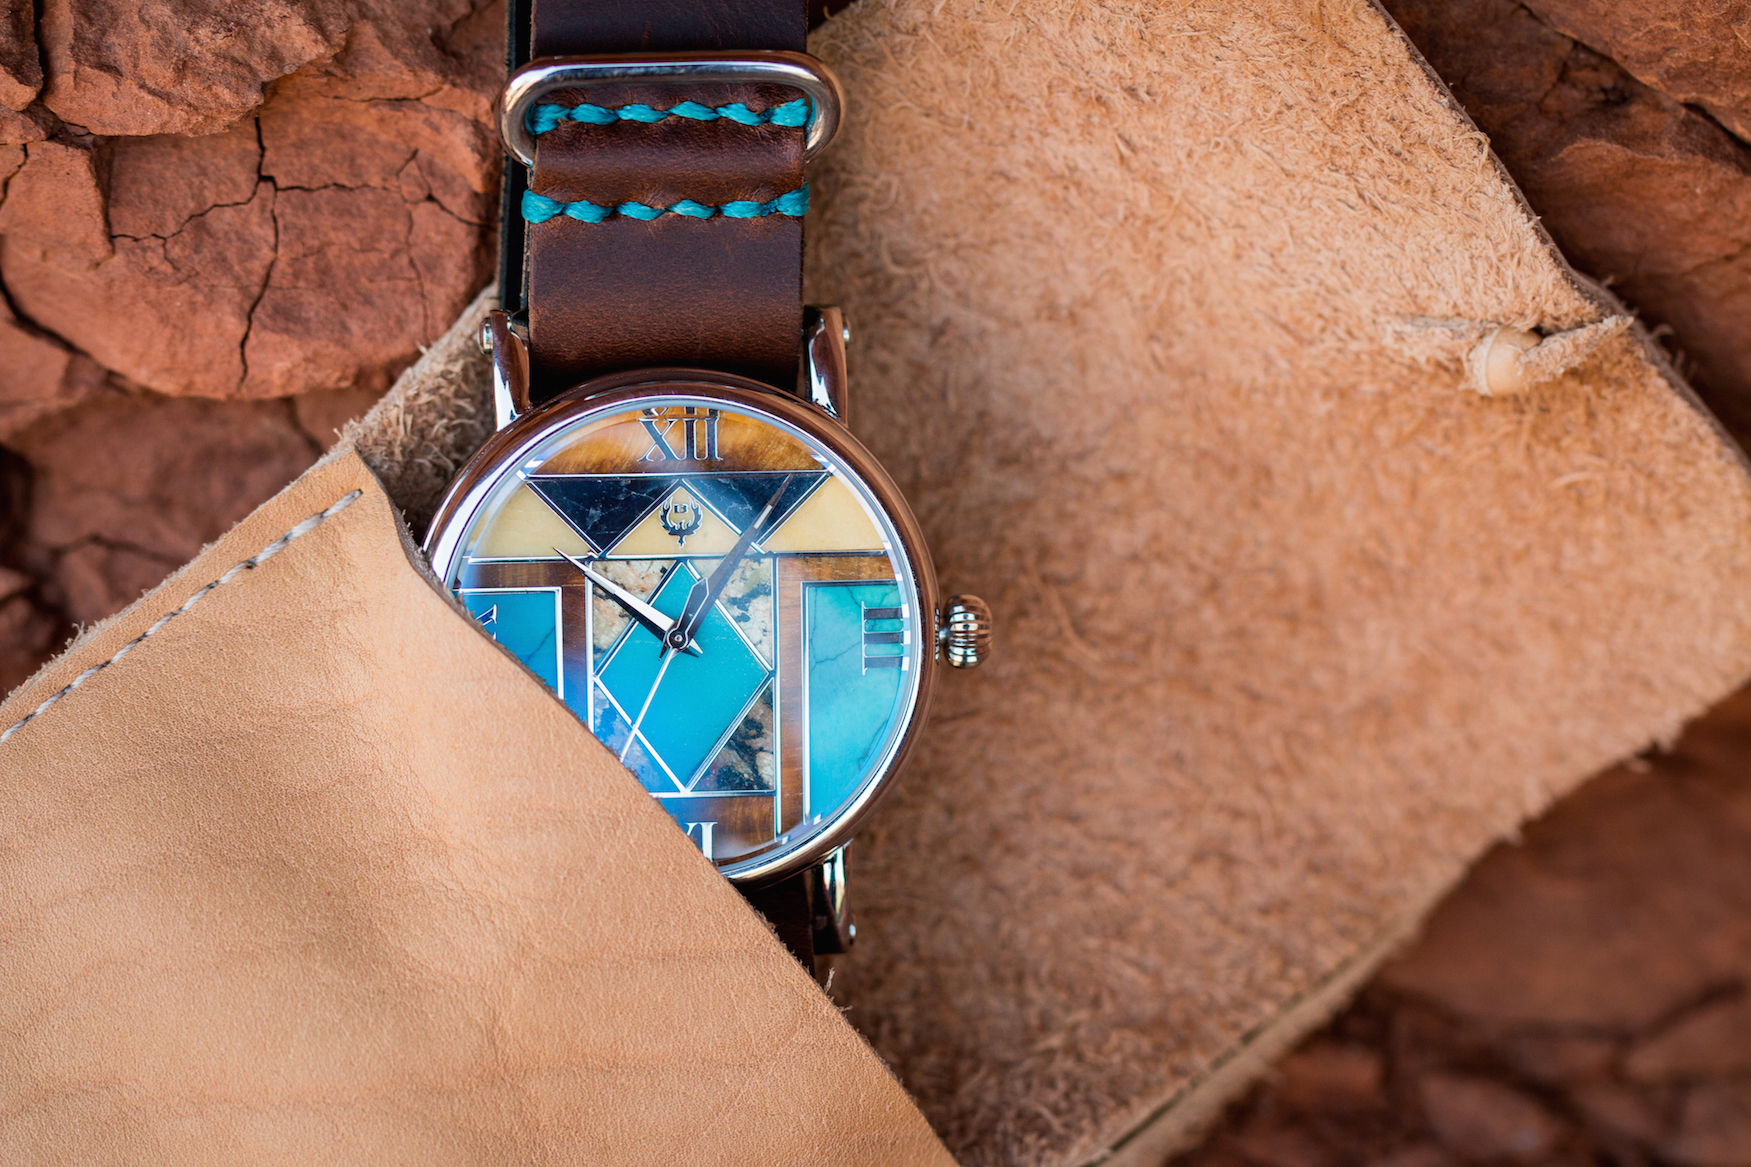 The Native Watch